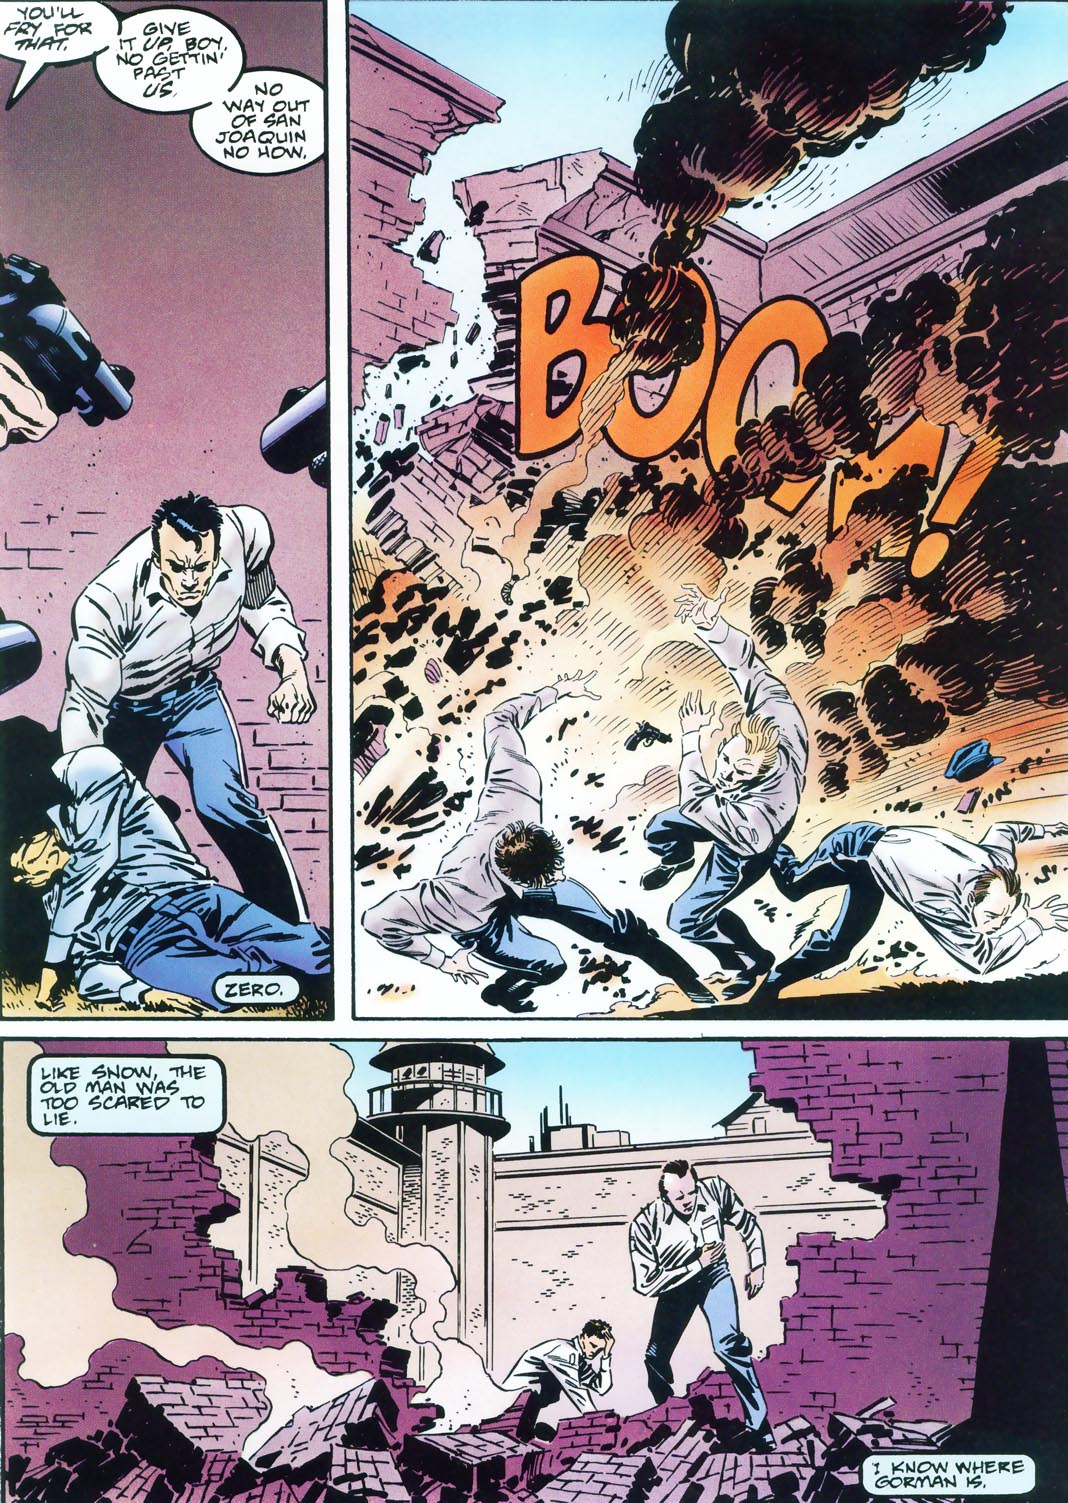 Epic Graphic Novel: The Punisher - Return to Big Nothing